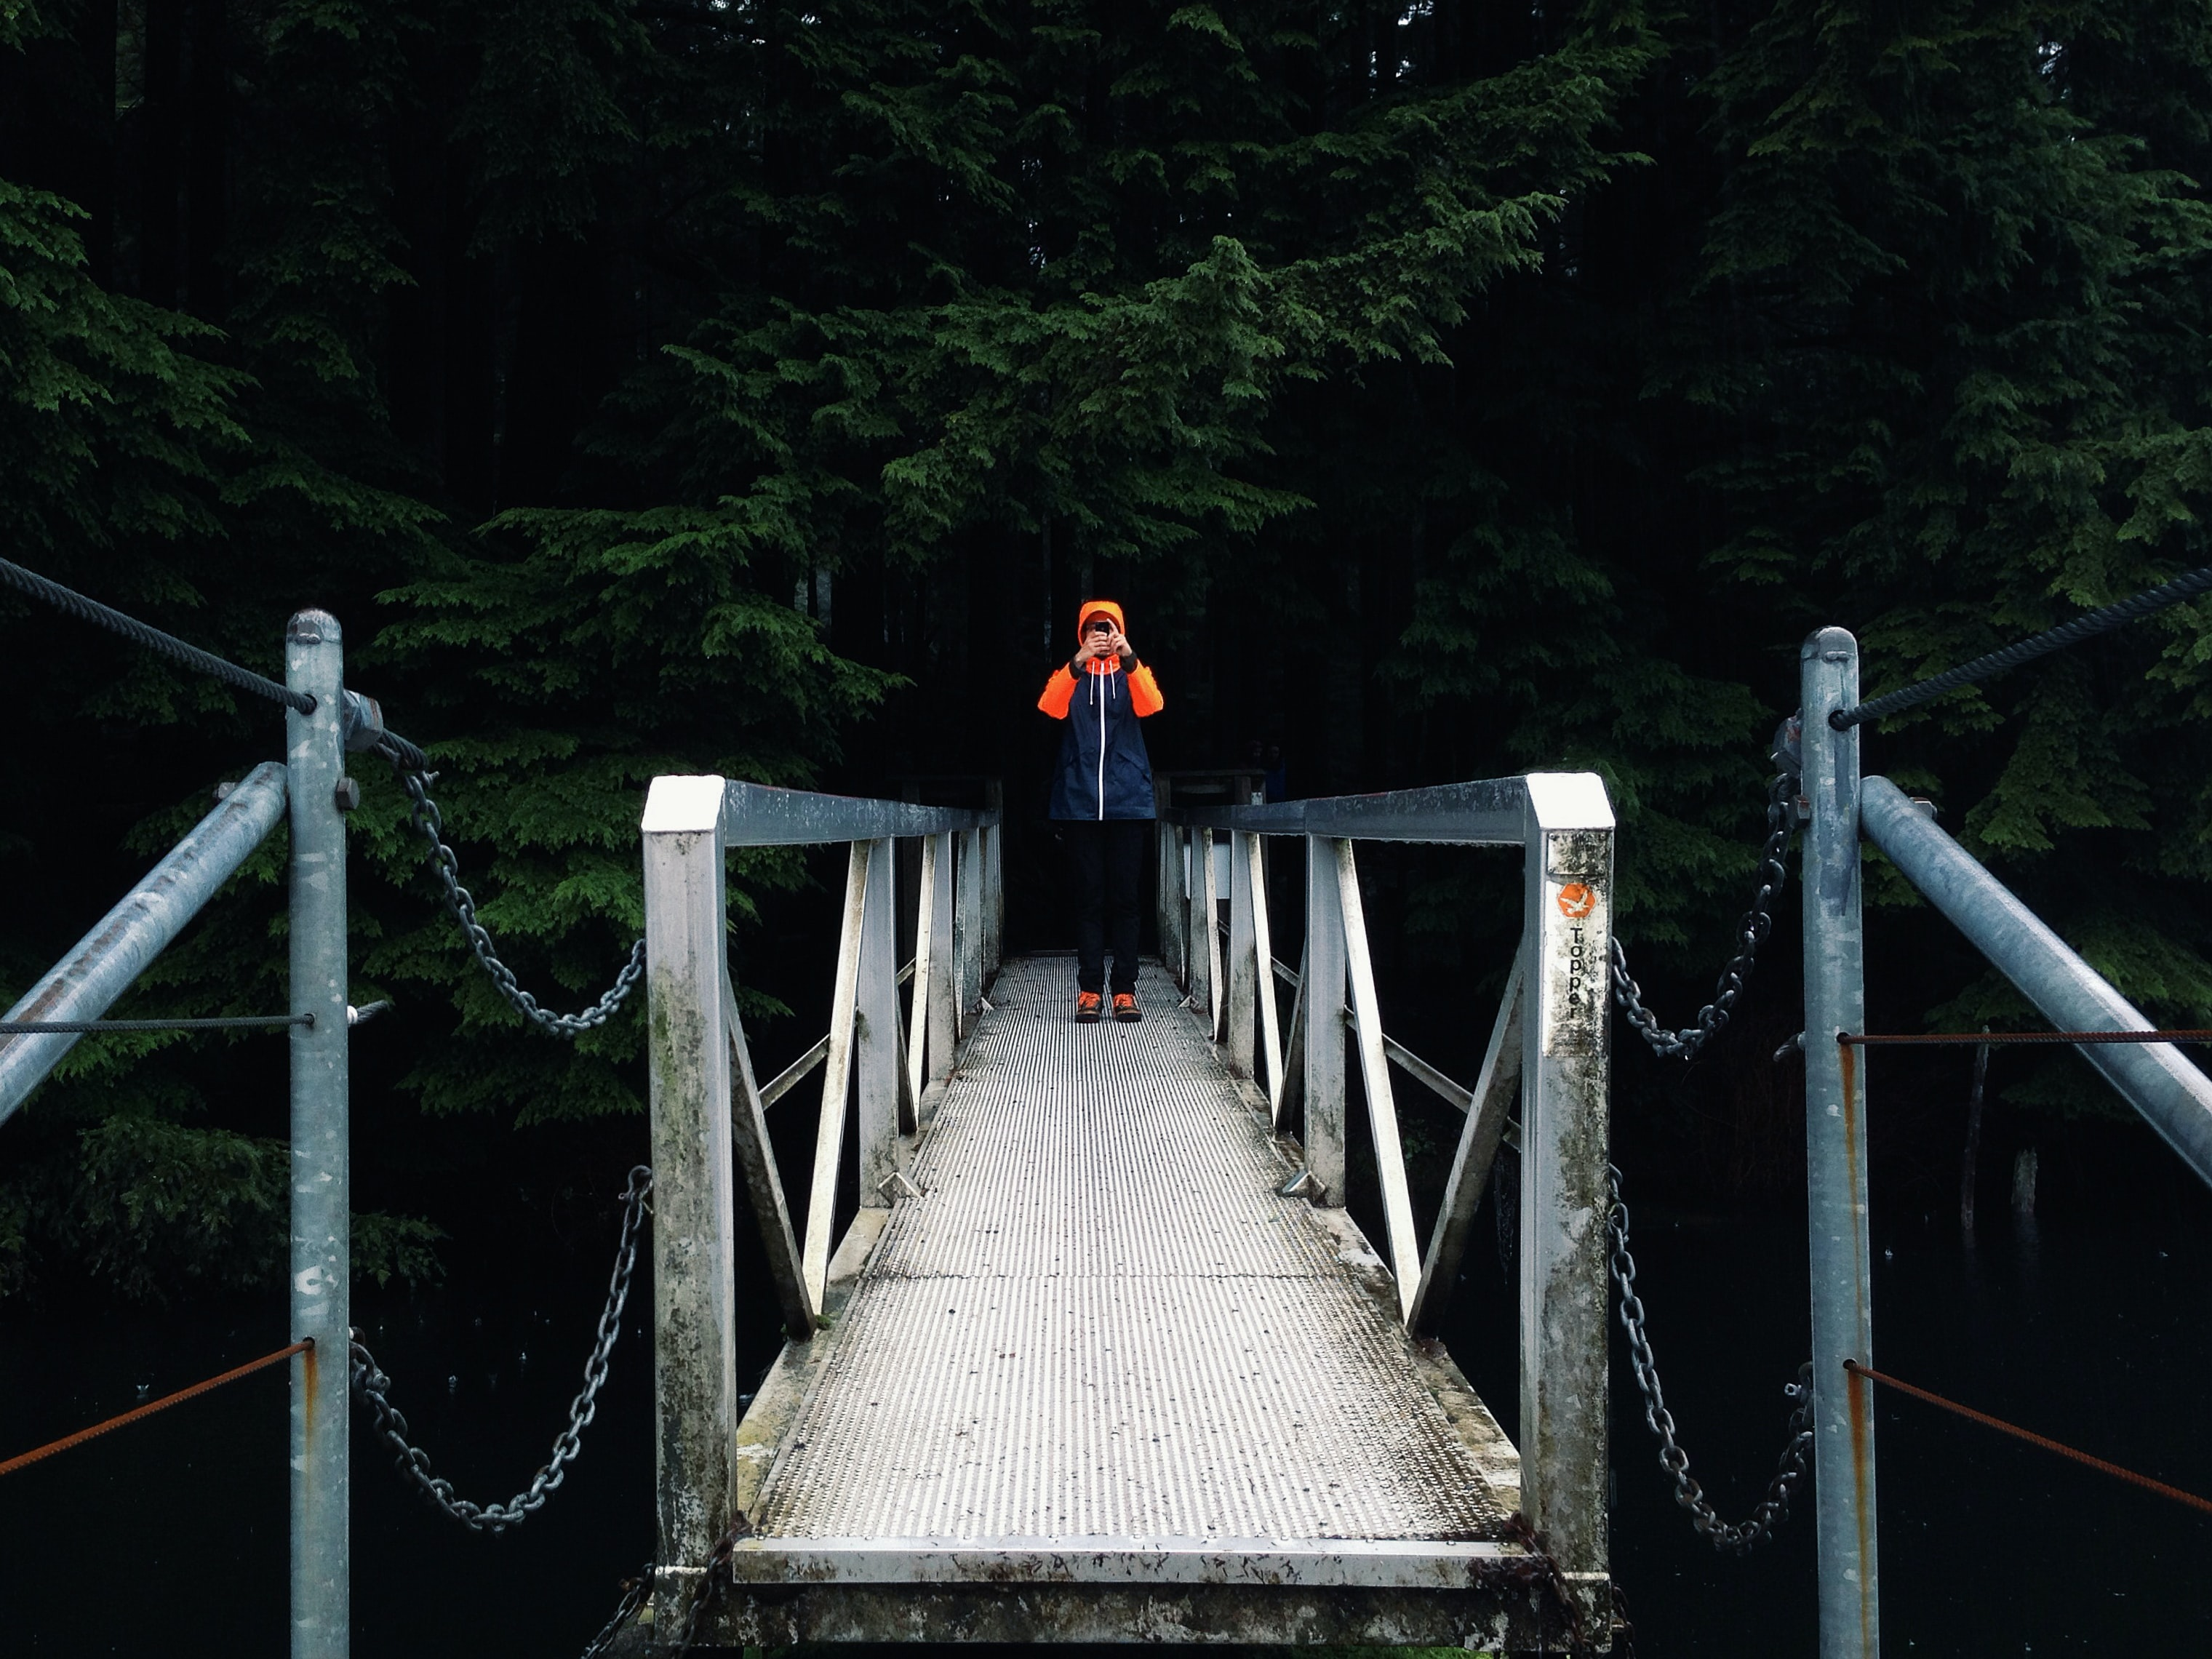 A man on a bridge leading into a forest taking a photo with his phone